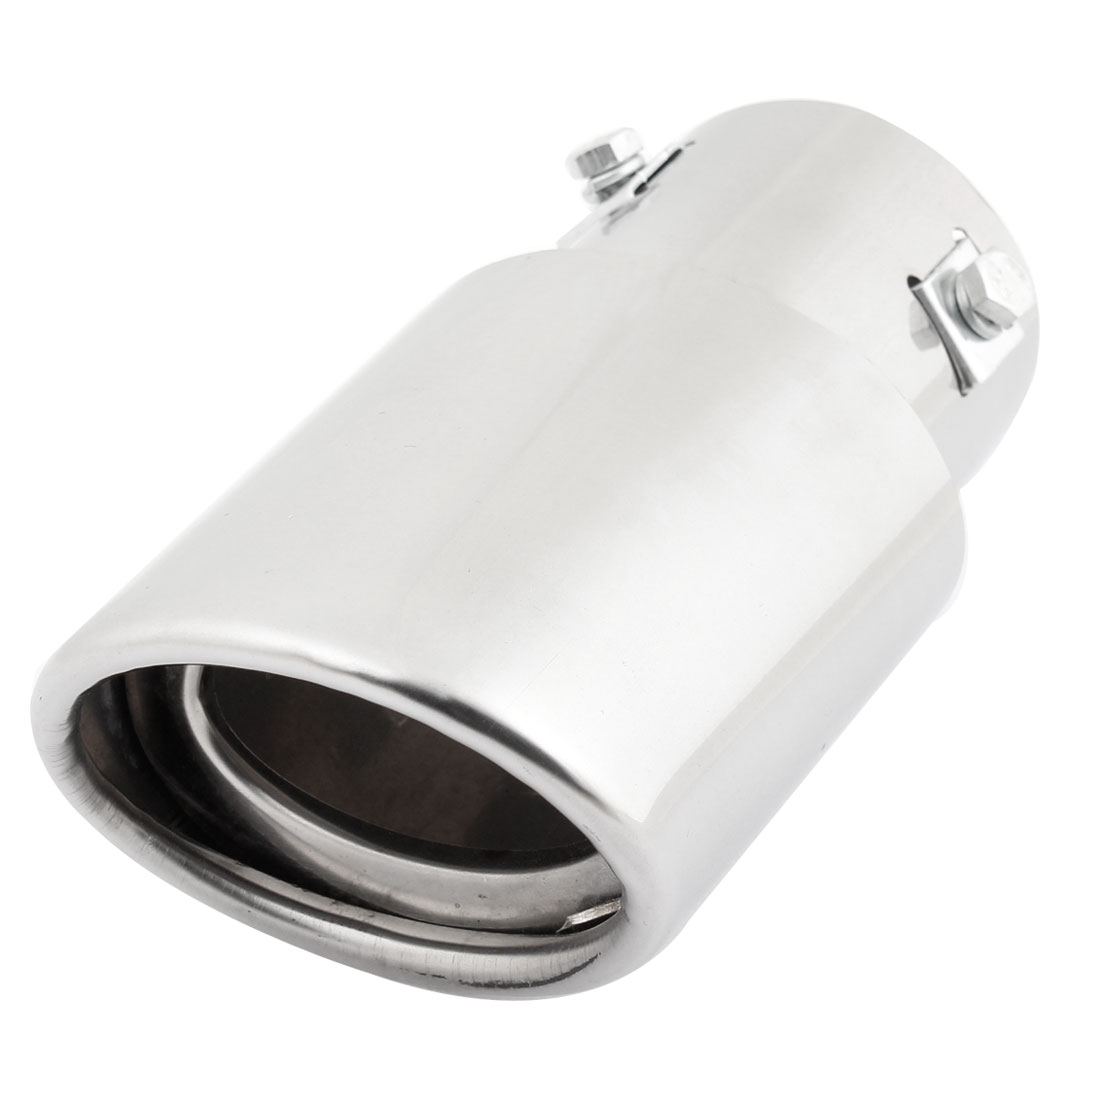 Auto Stainless Steel 60mm Inlet Dia Oval Slanted Exhaust Muffler Tip Silver Tone